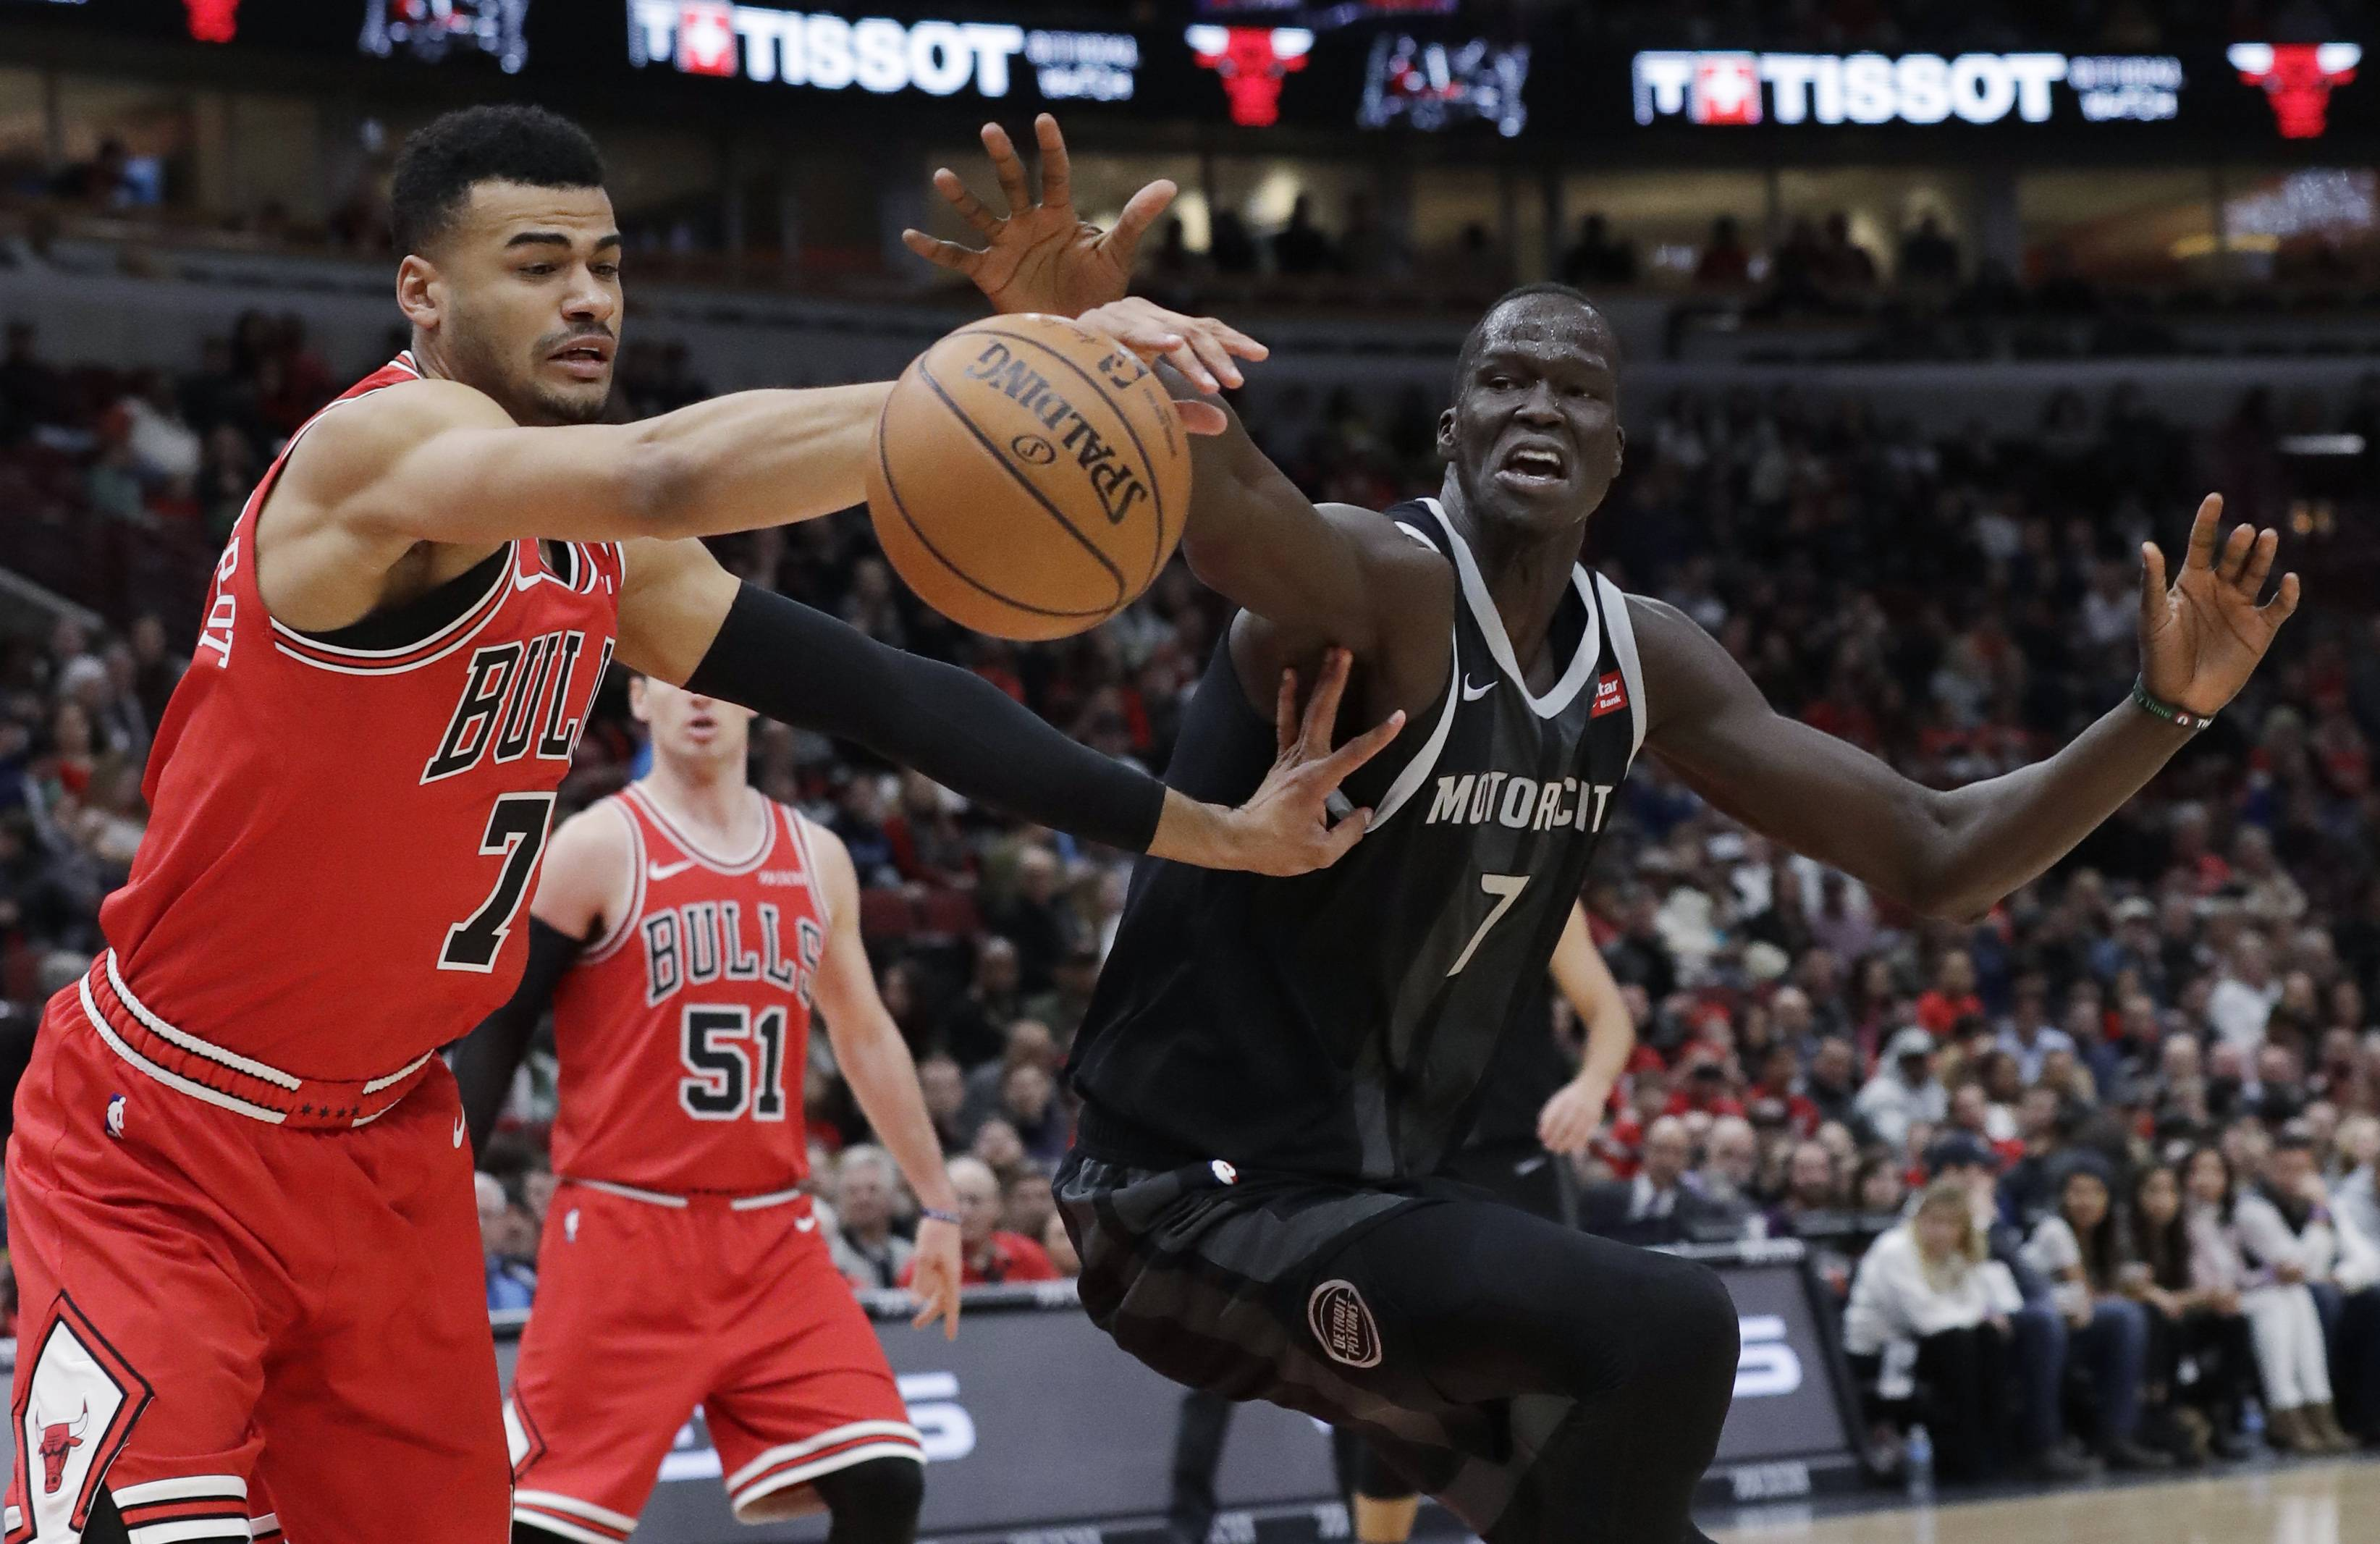 Bulls can't do much right now to fix depleted bench